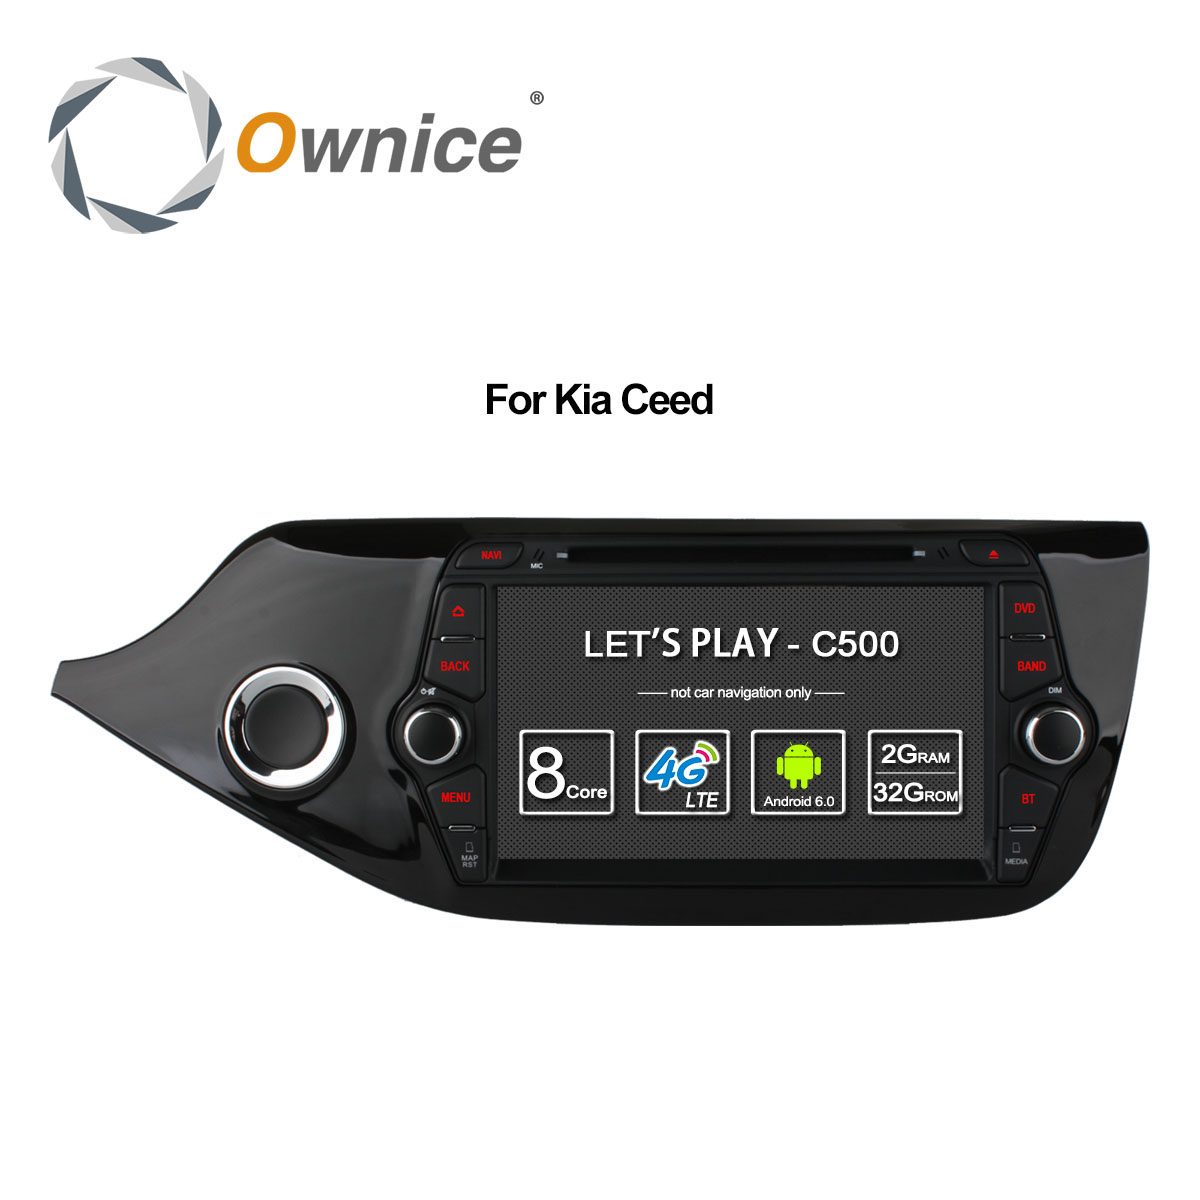 Ownice C500 4G SIM LTE Octa 8 Core Android 6 0 For Kia CEED 2013